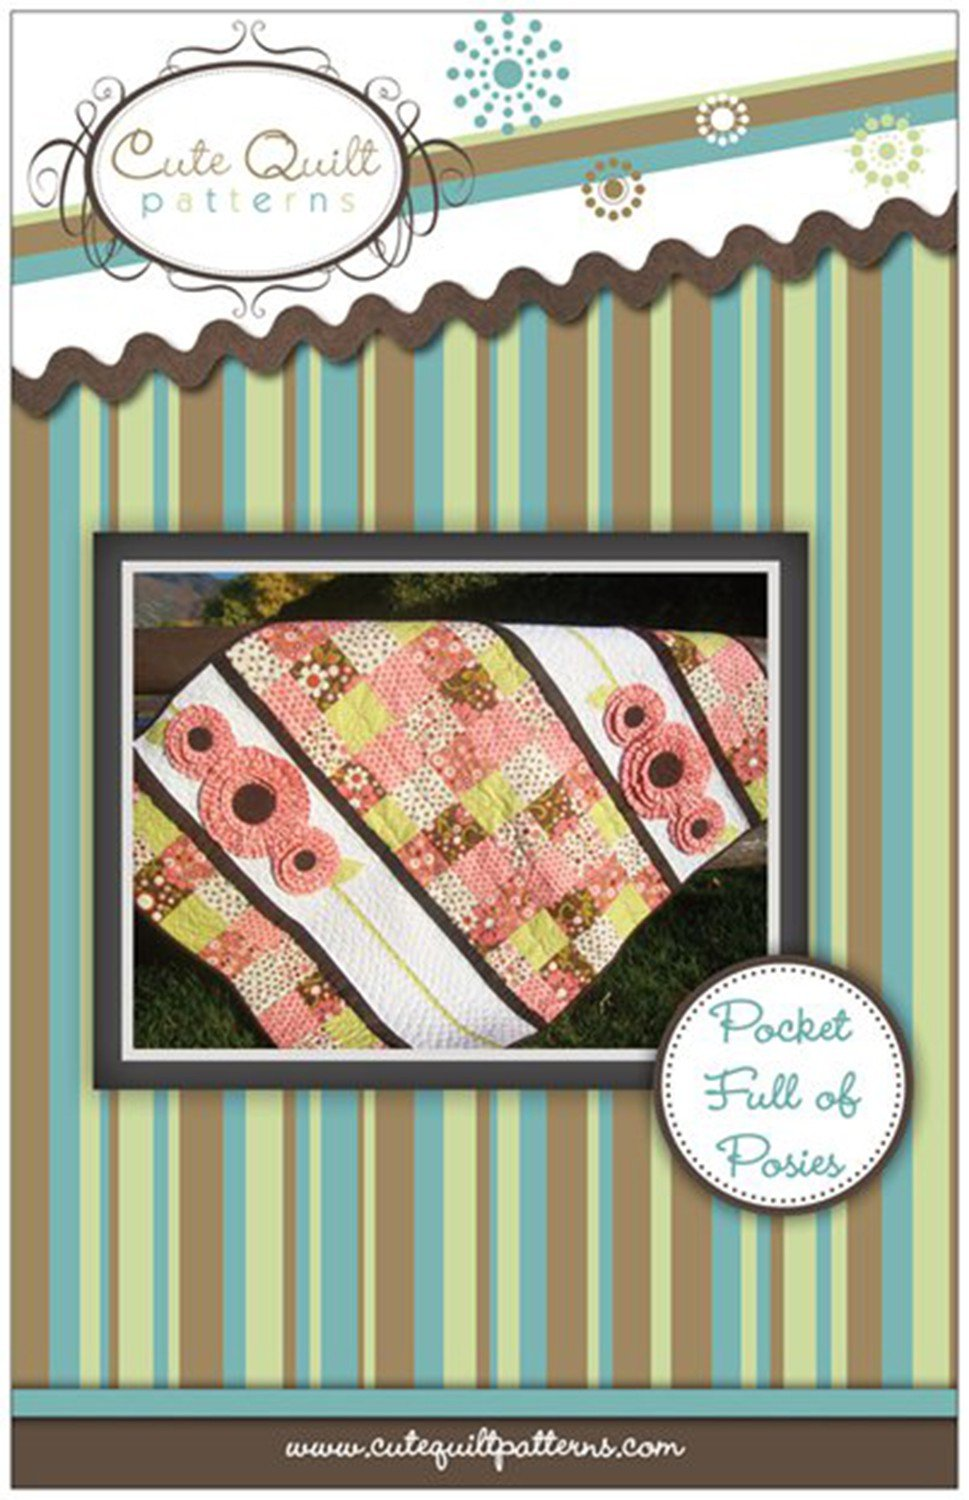 Pocket Of Posies Quilt Pattern.Pocket Full Of Posies Quilt